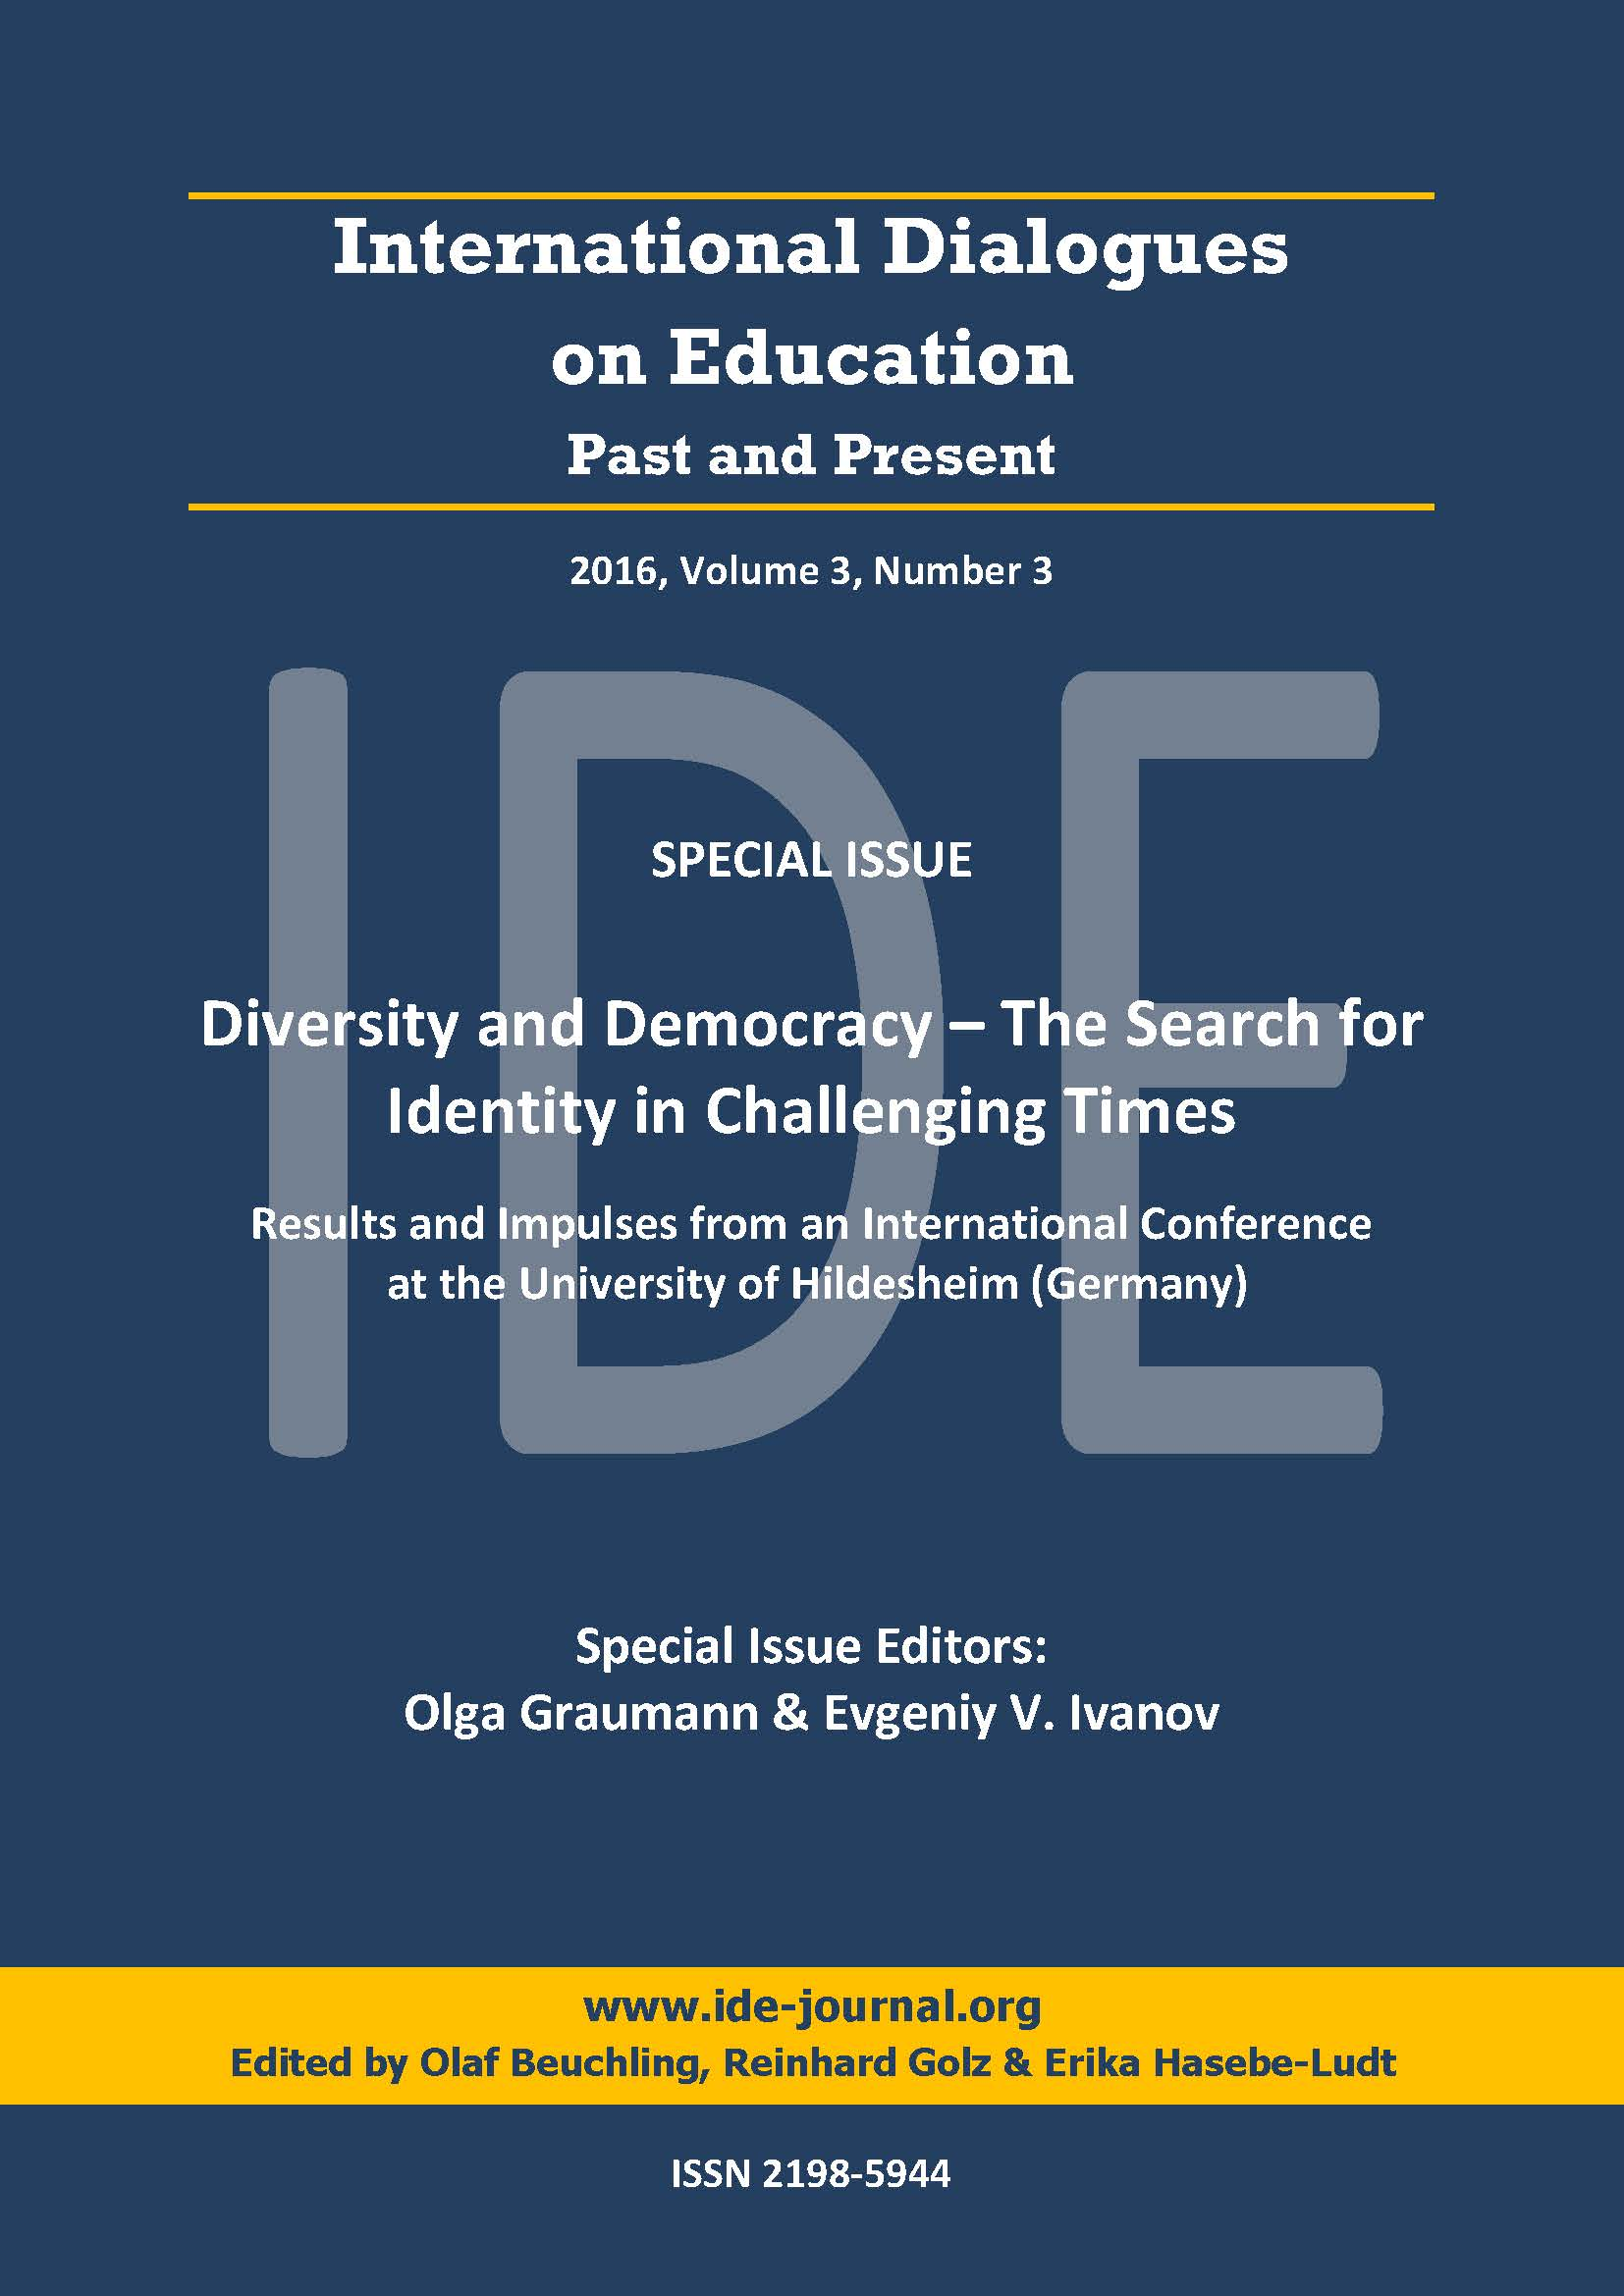 View Vol. 3 No. 3 (2016): Special Issue: Diversity and Democracy – The Search for Identity in Challenging Times: Results and Impulses from a Conference Part I